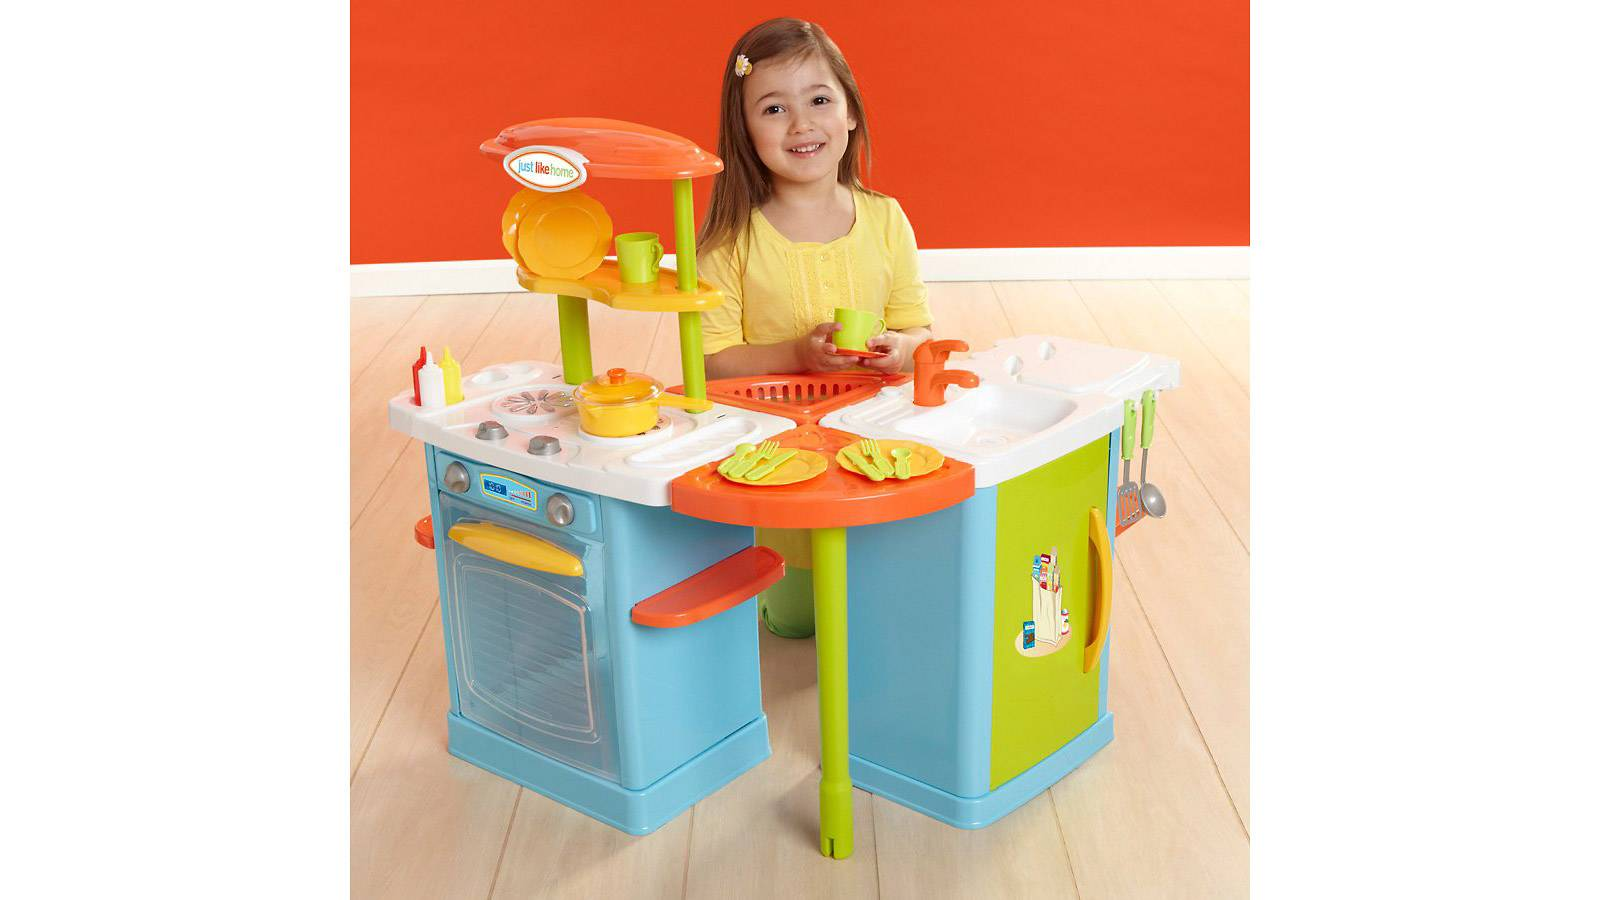 Tots-BUYER'S-GUIDE-9-best-role-playing-toys-for-toddlers-JUST-LIKE-HOME-KITCHEN